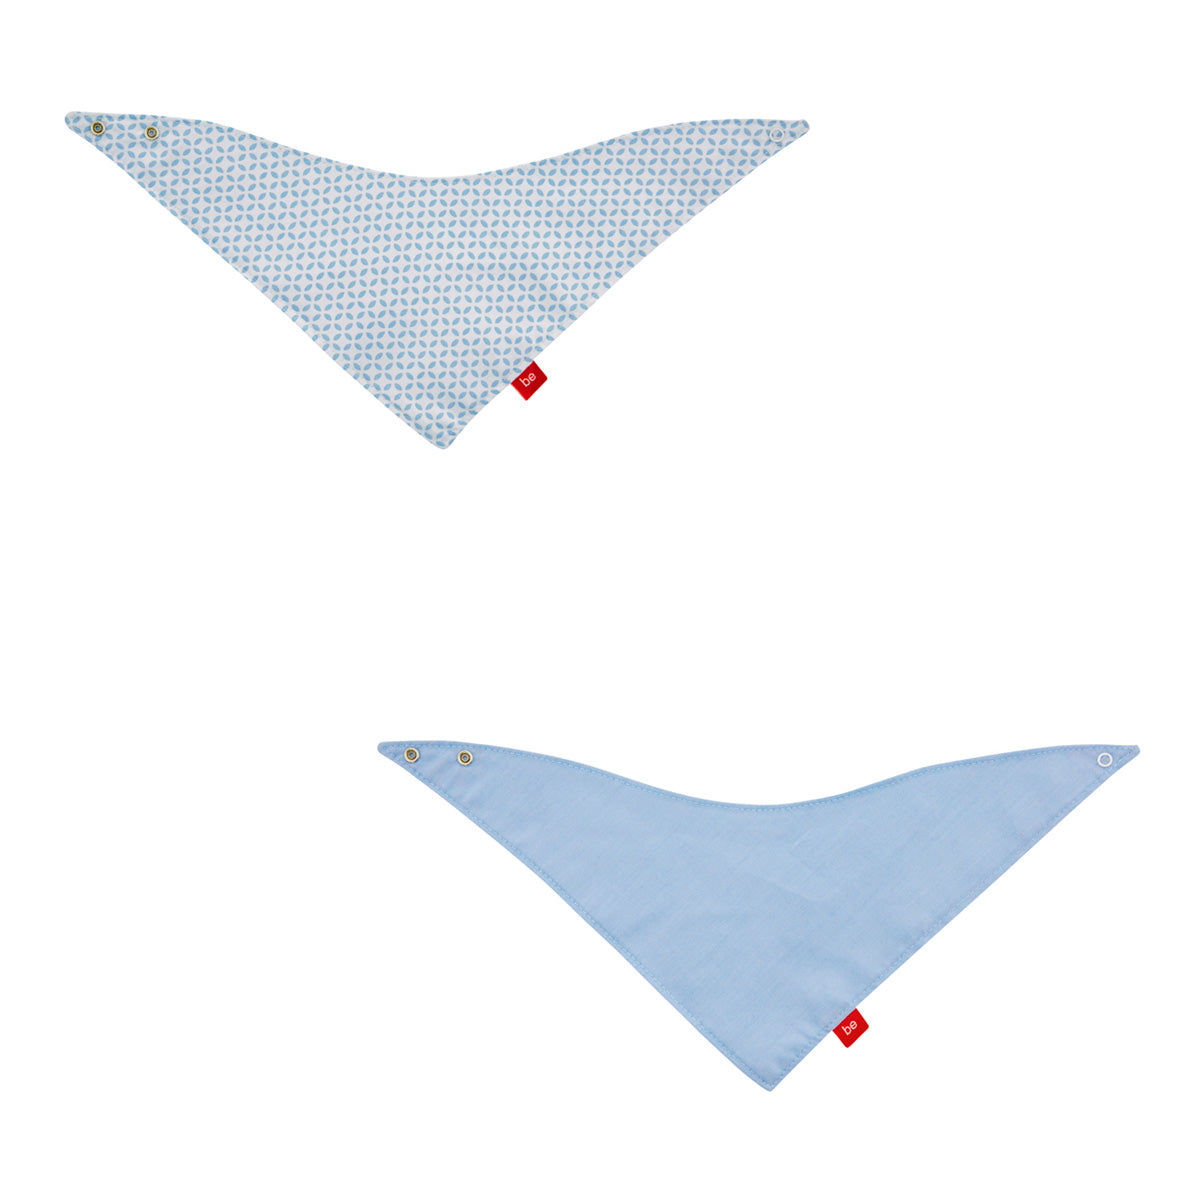 Cambrass Triangle Bandana Bib 2 Pack